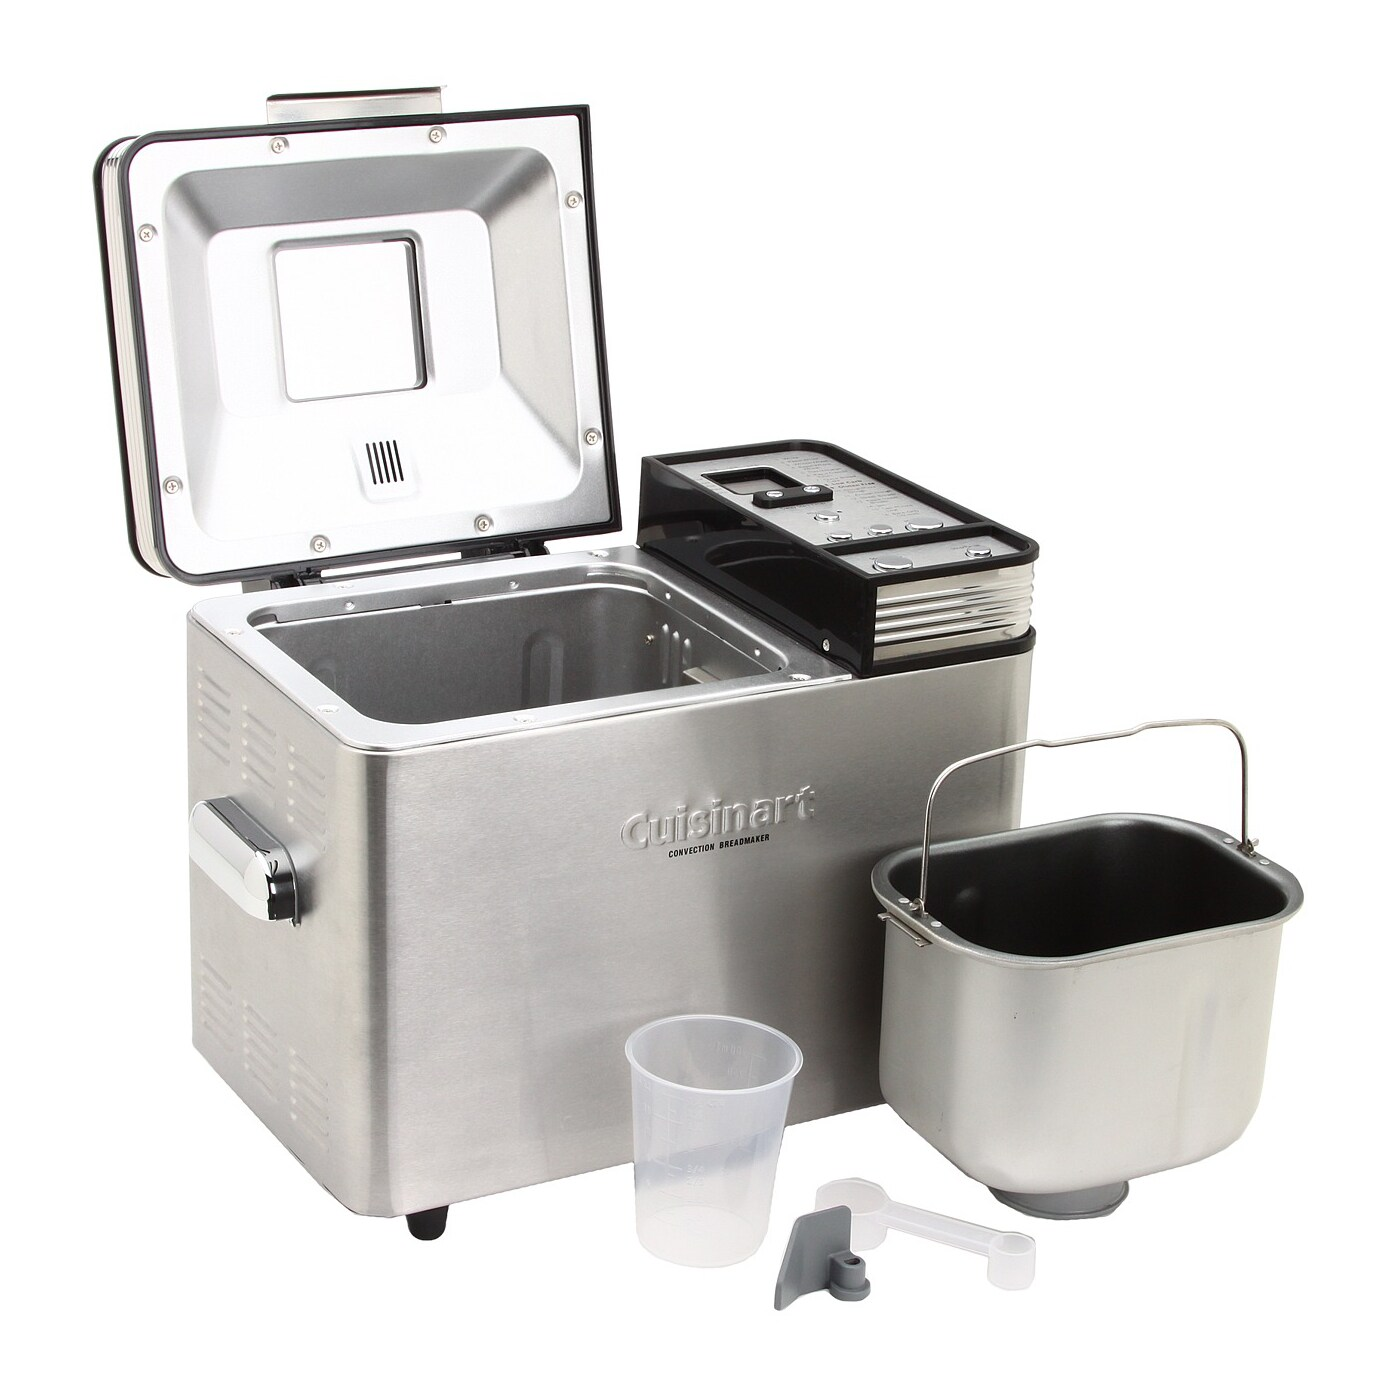 Shop Cuisinart CBK-200 2-pound Automatic Convection Bread Maker - Free  Shipping Today - Overstock.com - 4217119